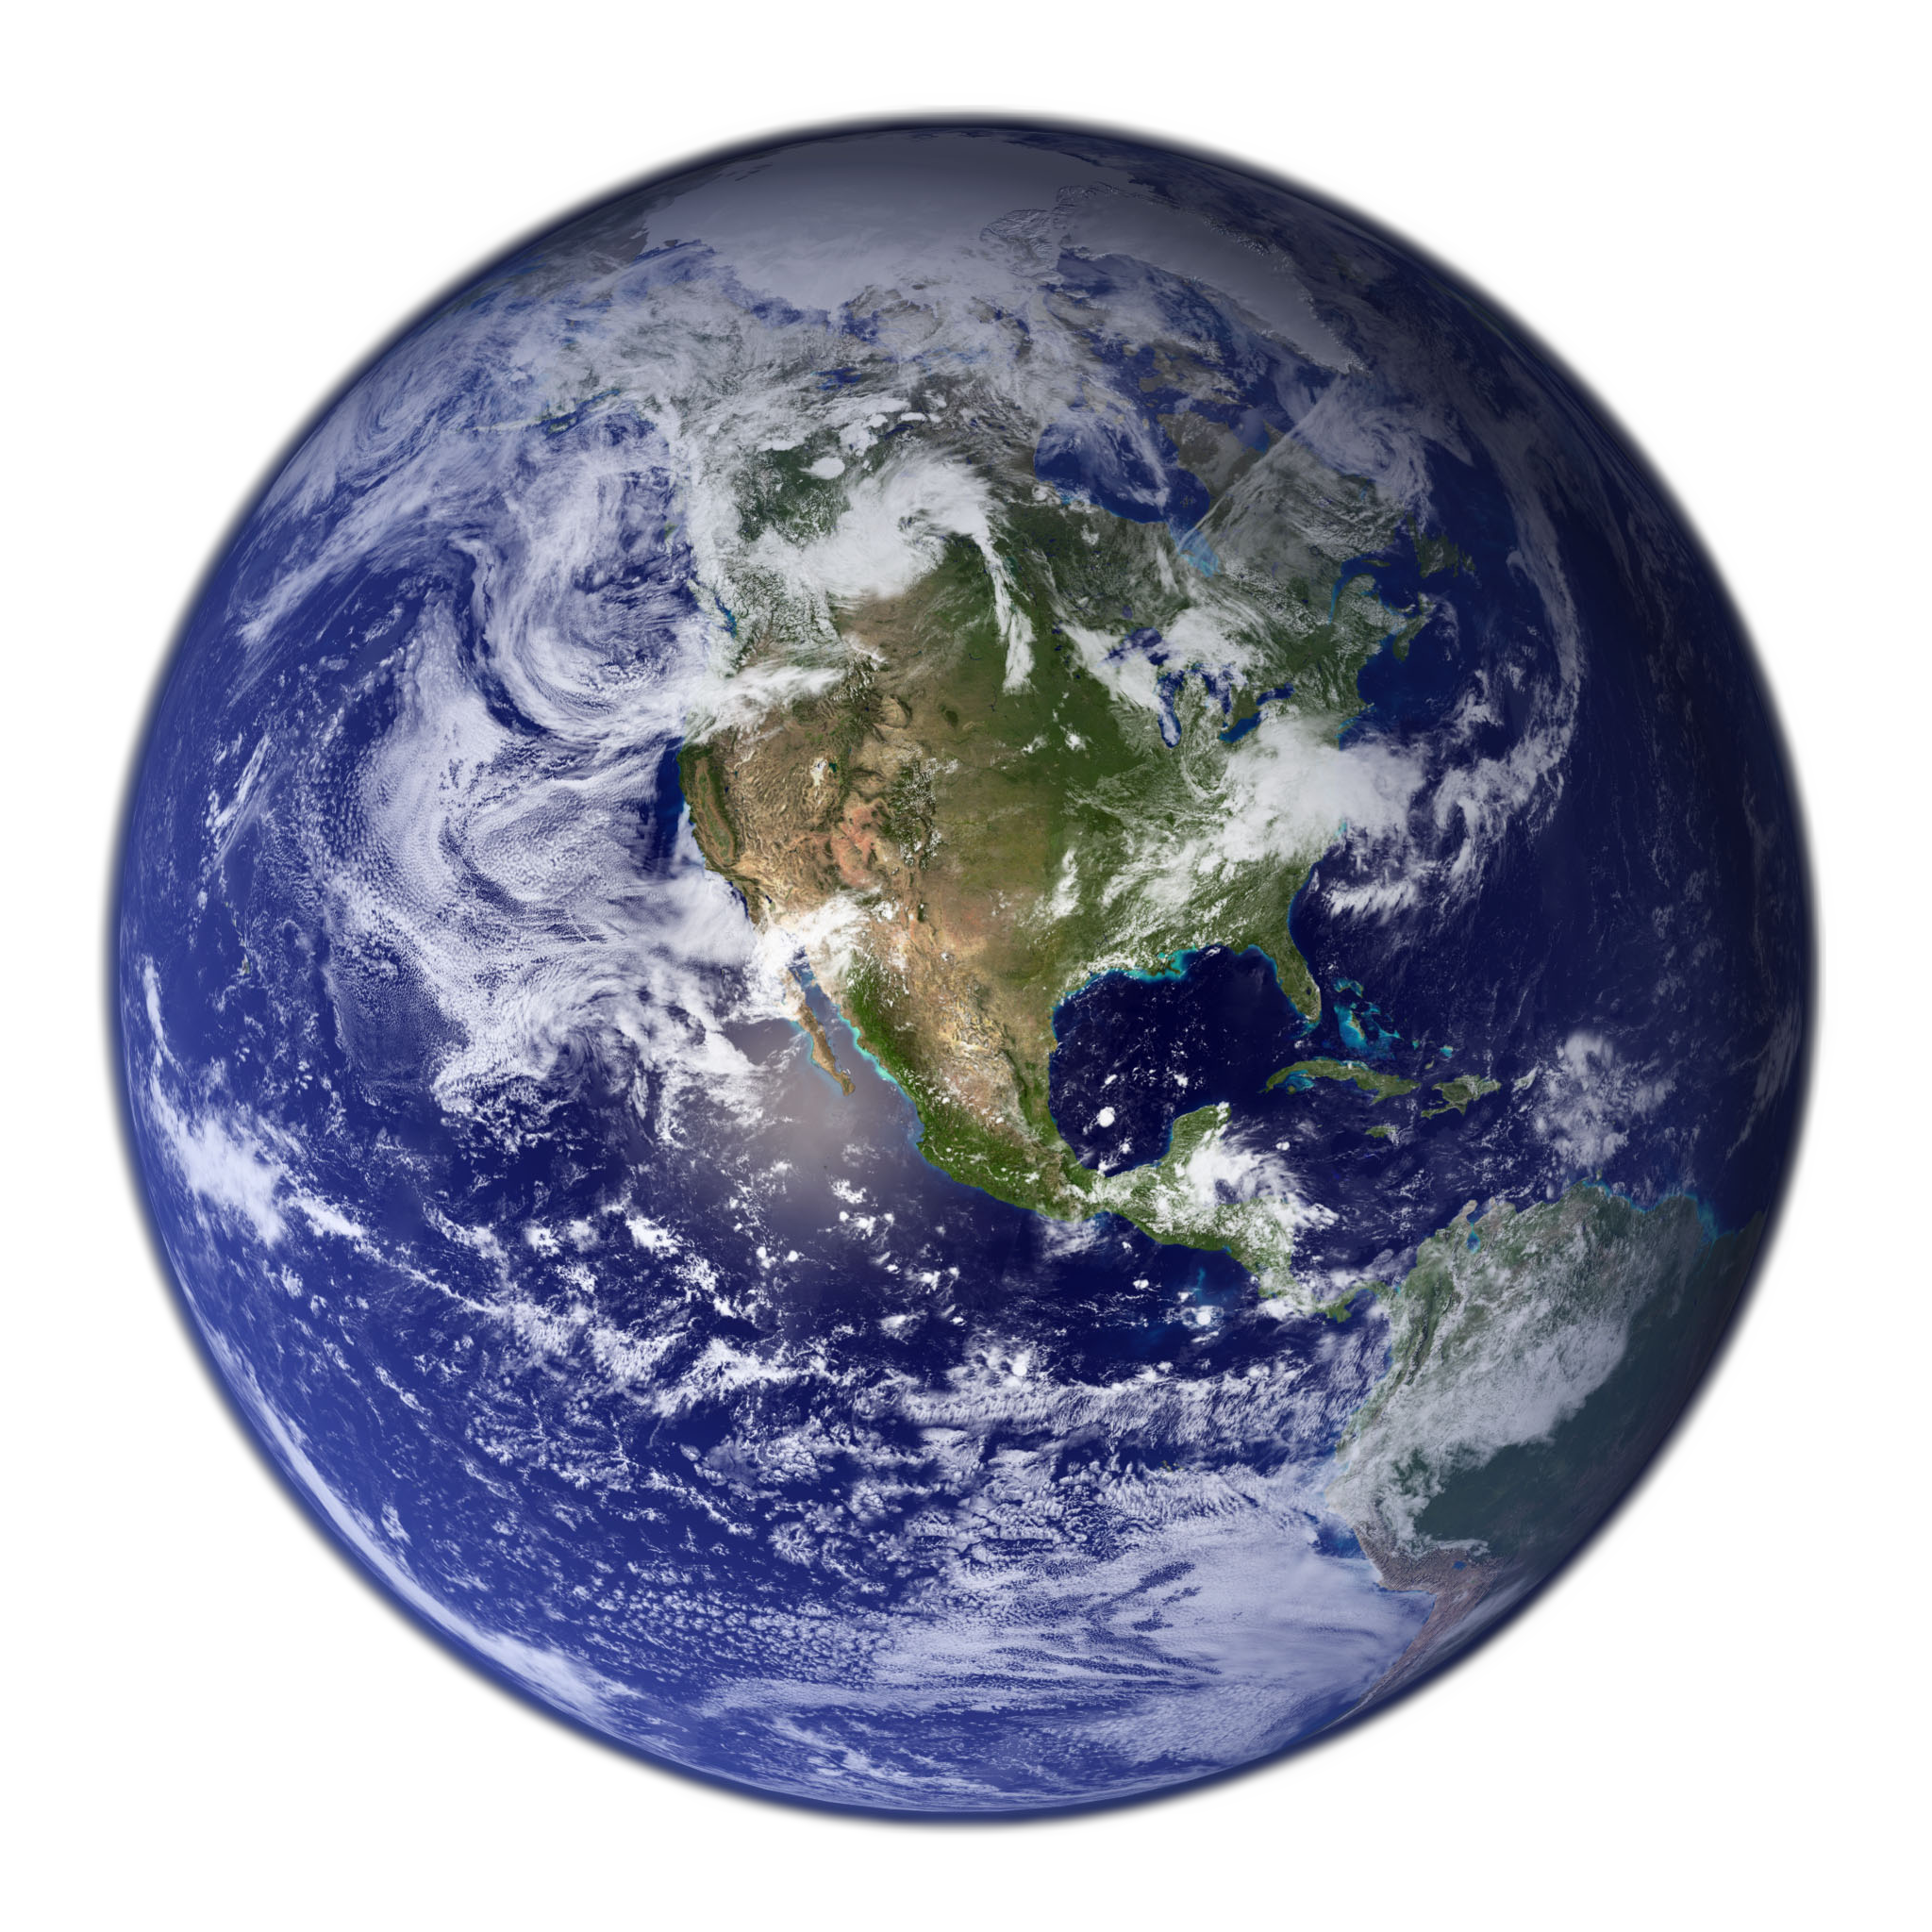 Png files transparent background. Earth picture bdfjade top